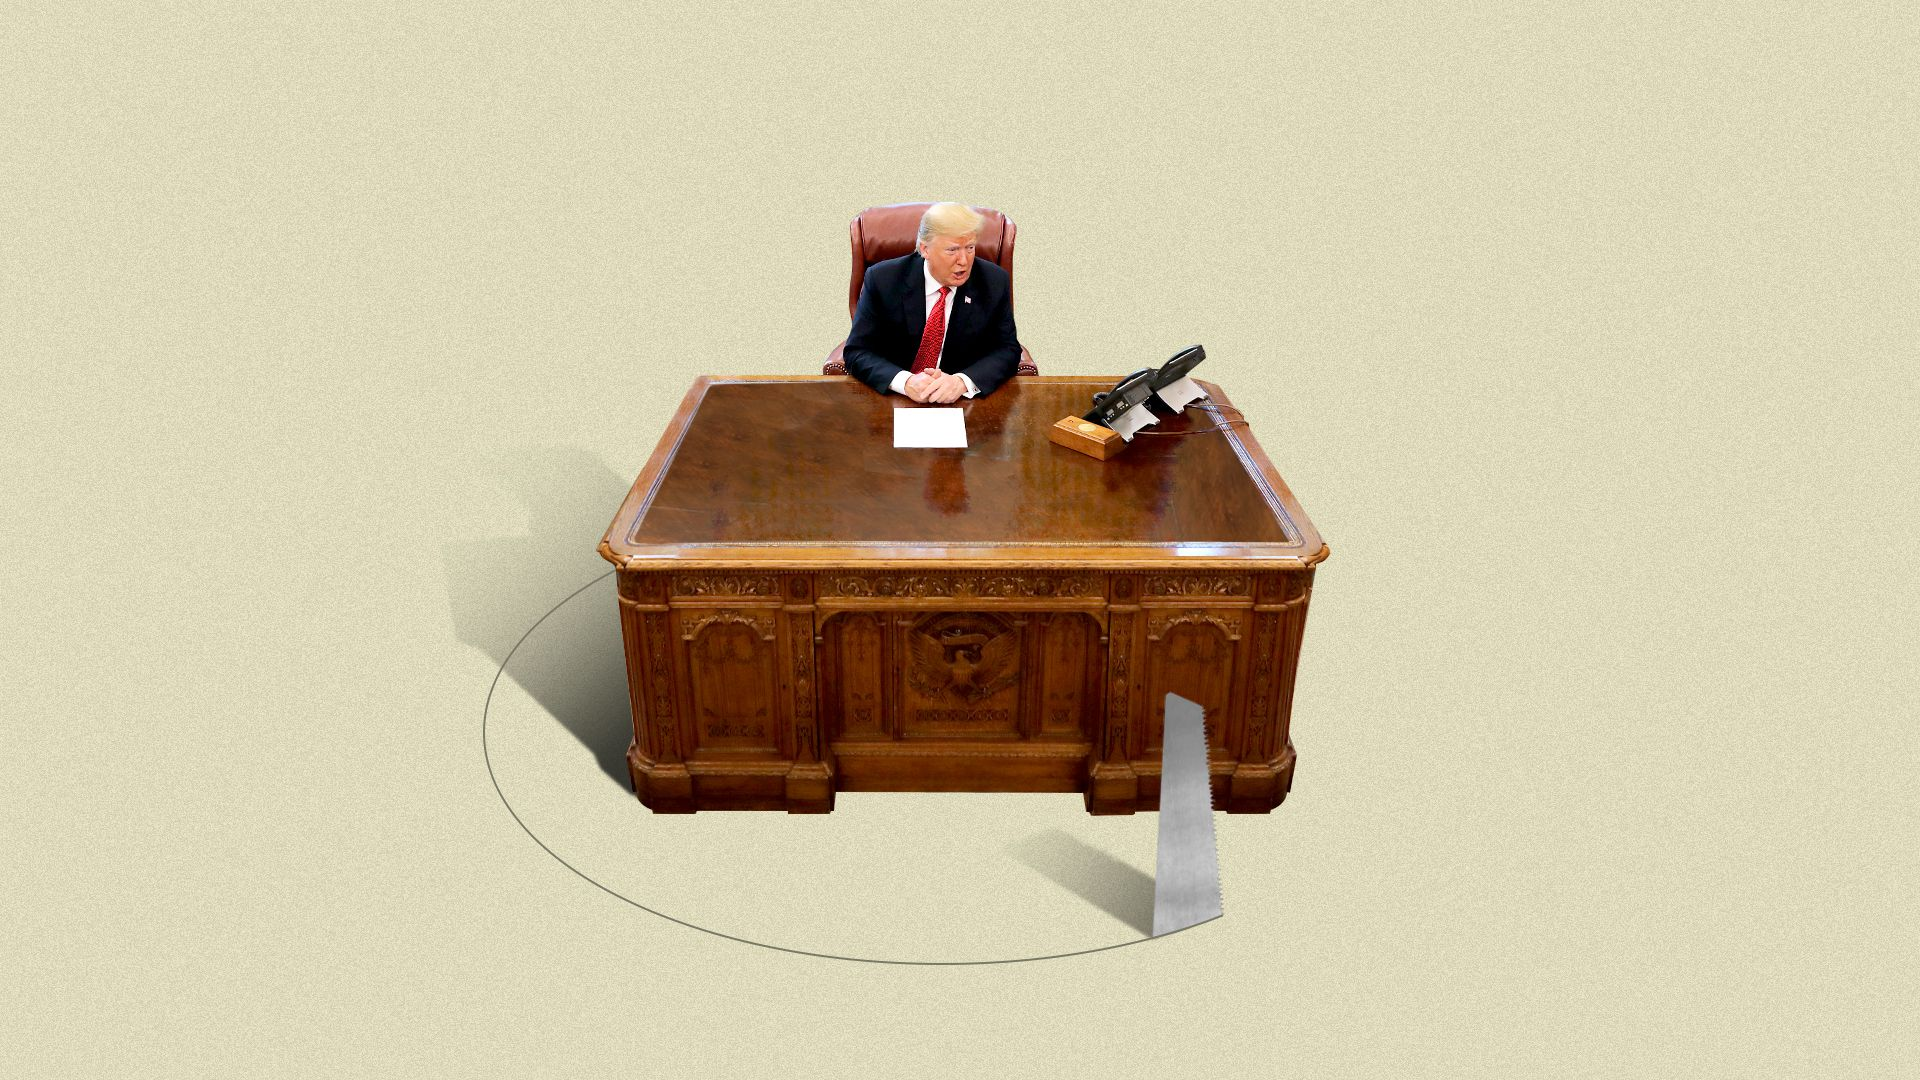 Illustration of President Trump sitting at his desk, a saw is cutting a circle around the desk. Illustration of President Trump sitting at his desk, a saw is cutting a circle around the desk.